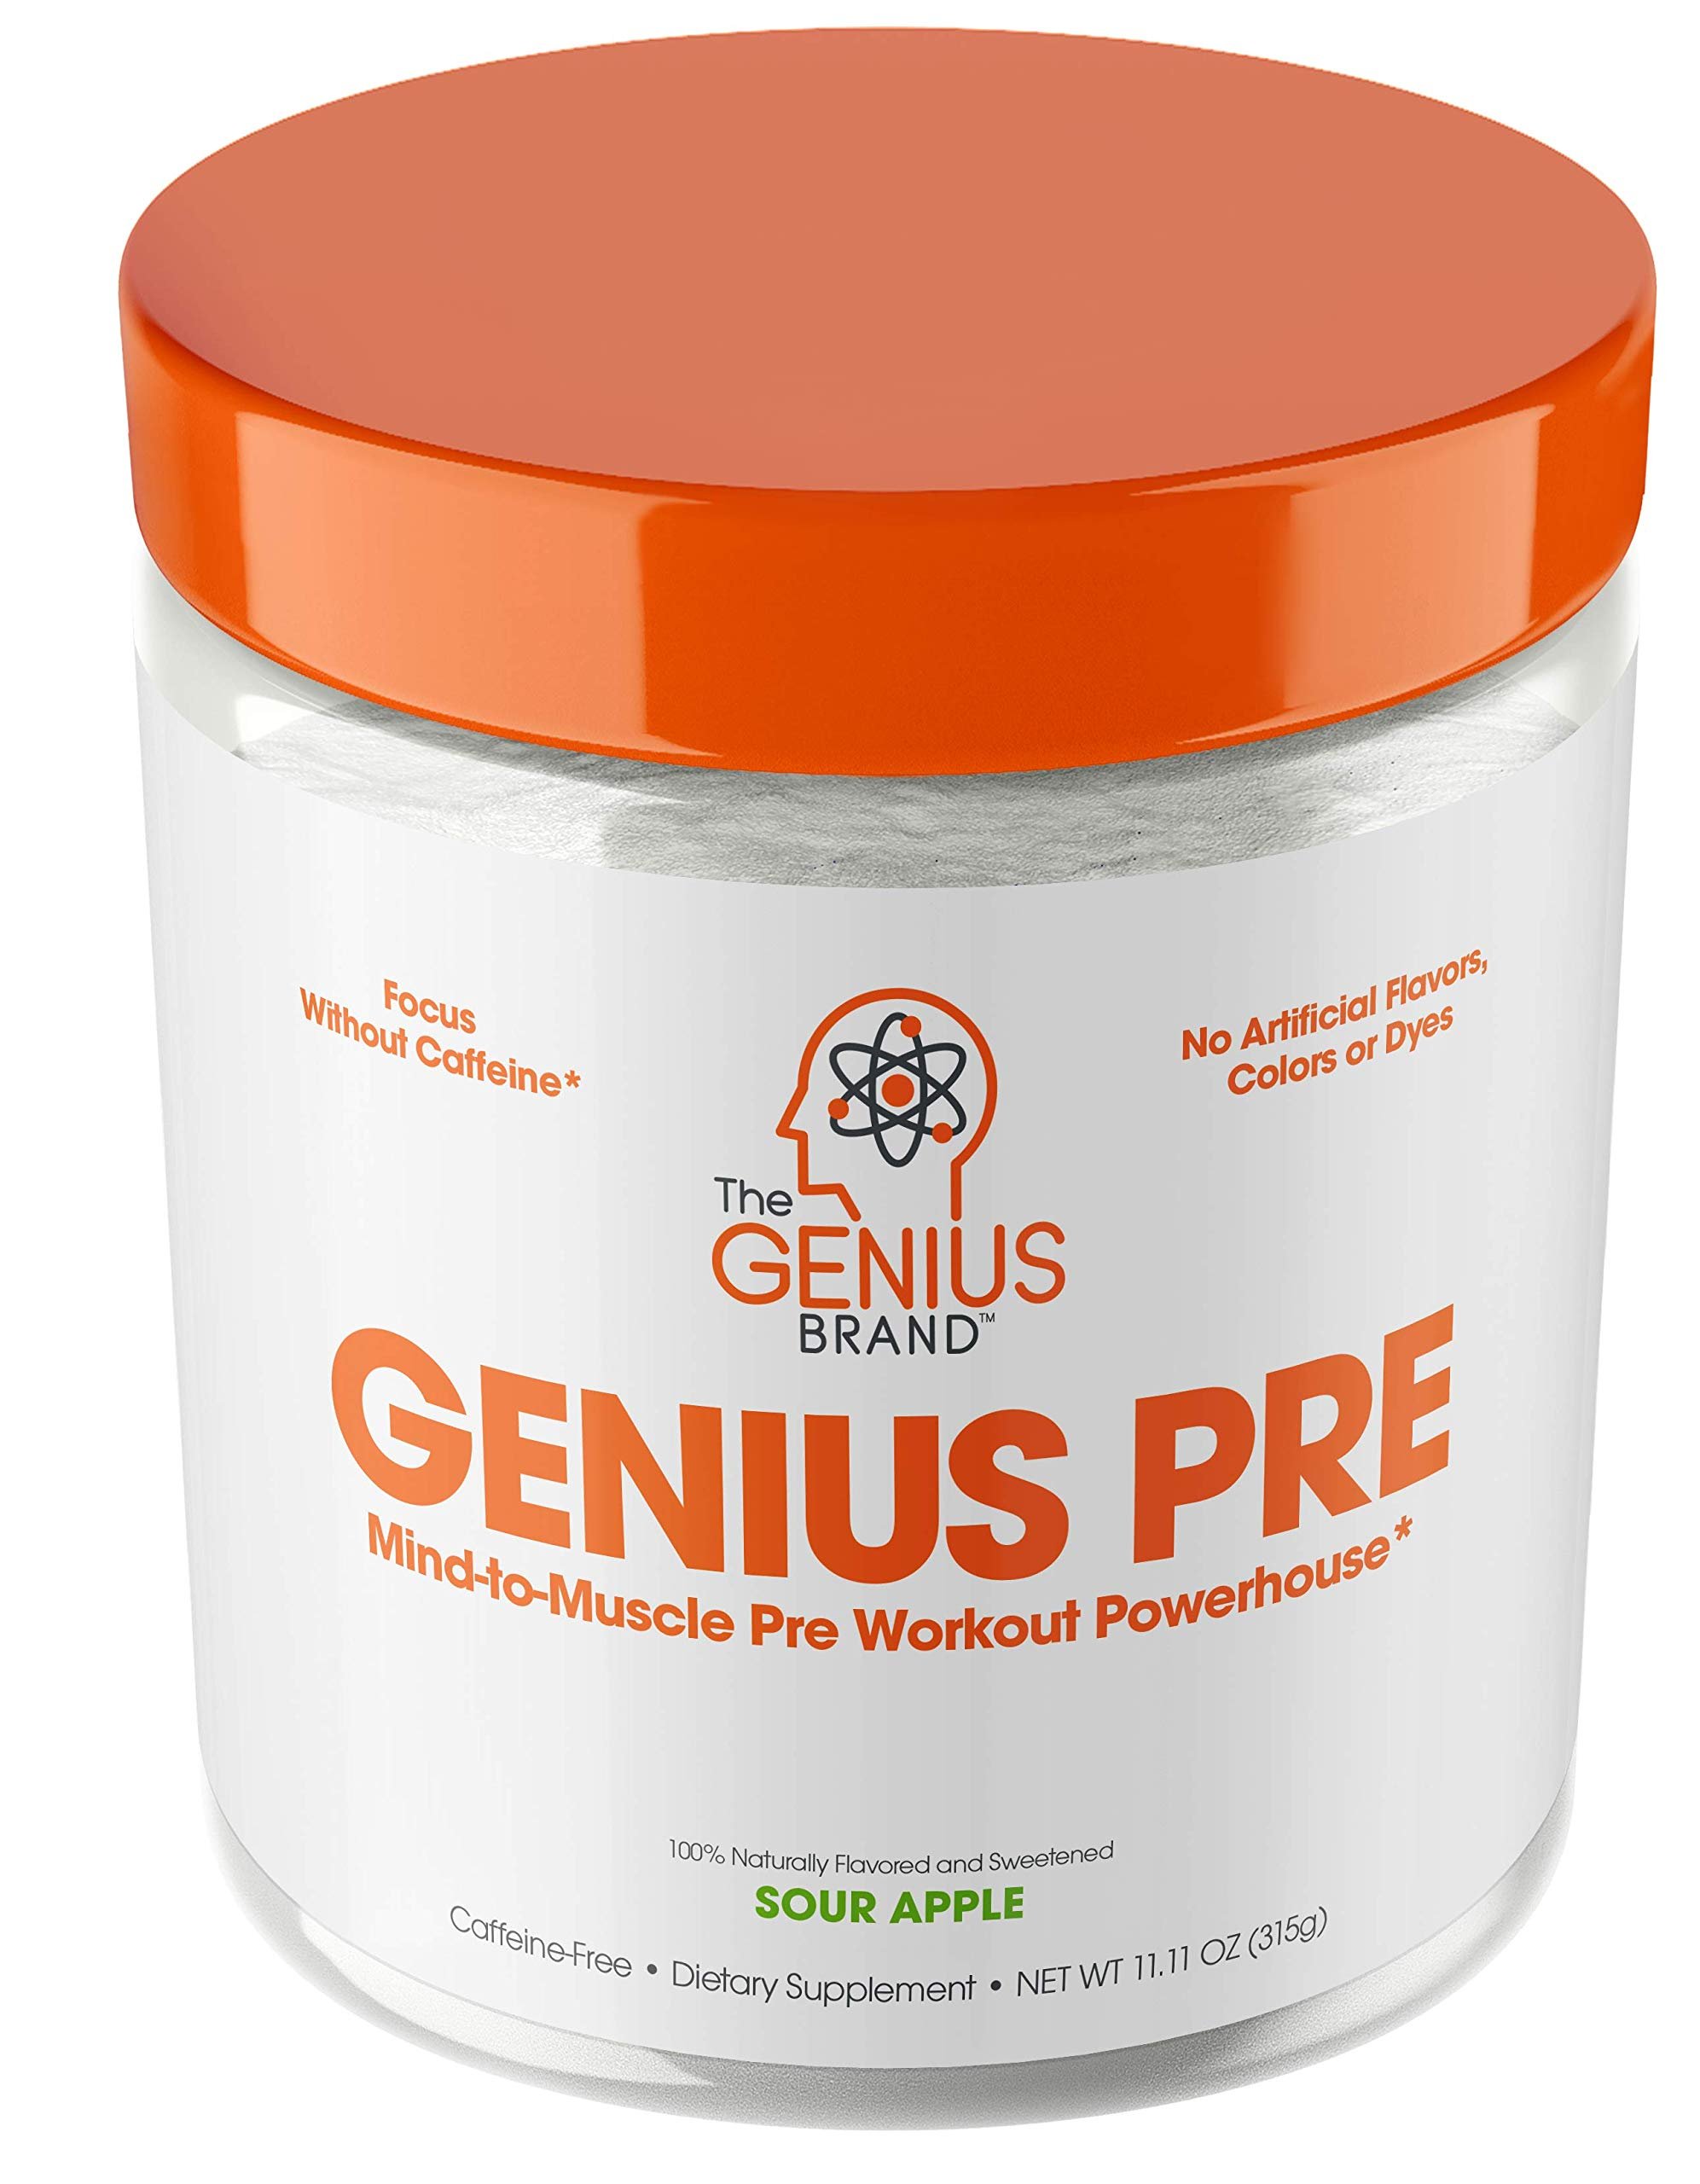 Genius Pre Workout Powder - All Natural Nootropic Preworkout & Caffeine Free Nitric Oxide Booster w/Beta Alanine & Alpha GPC | Boost Focus, Energy & NO | Muscle Builder Supplement -Sour Apple - 20SV by The Genius Brand